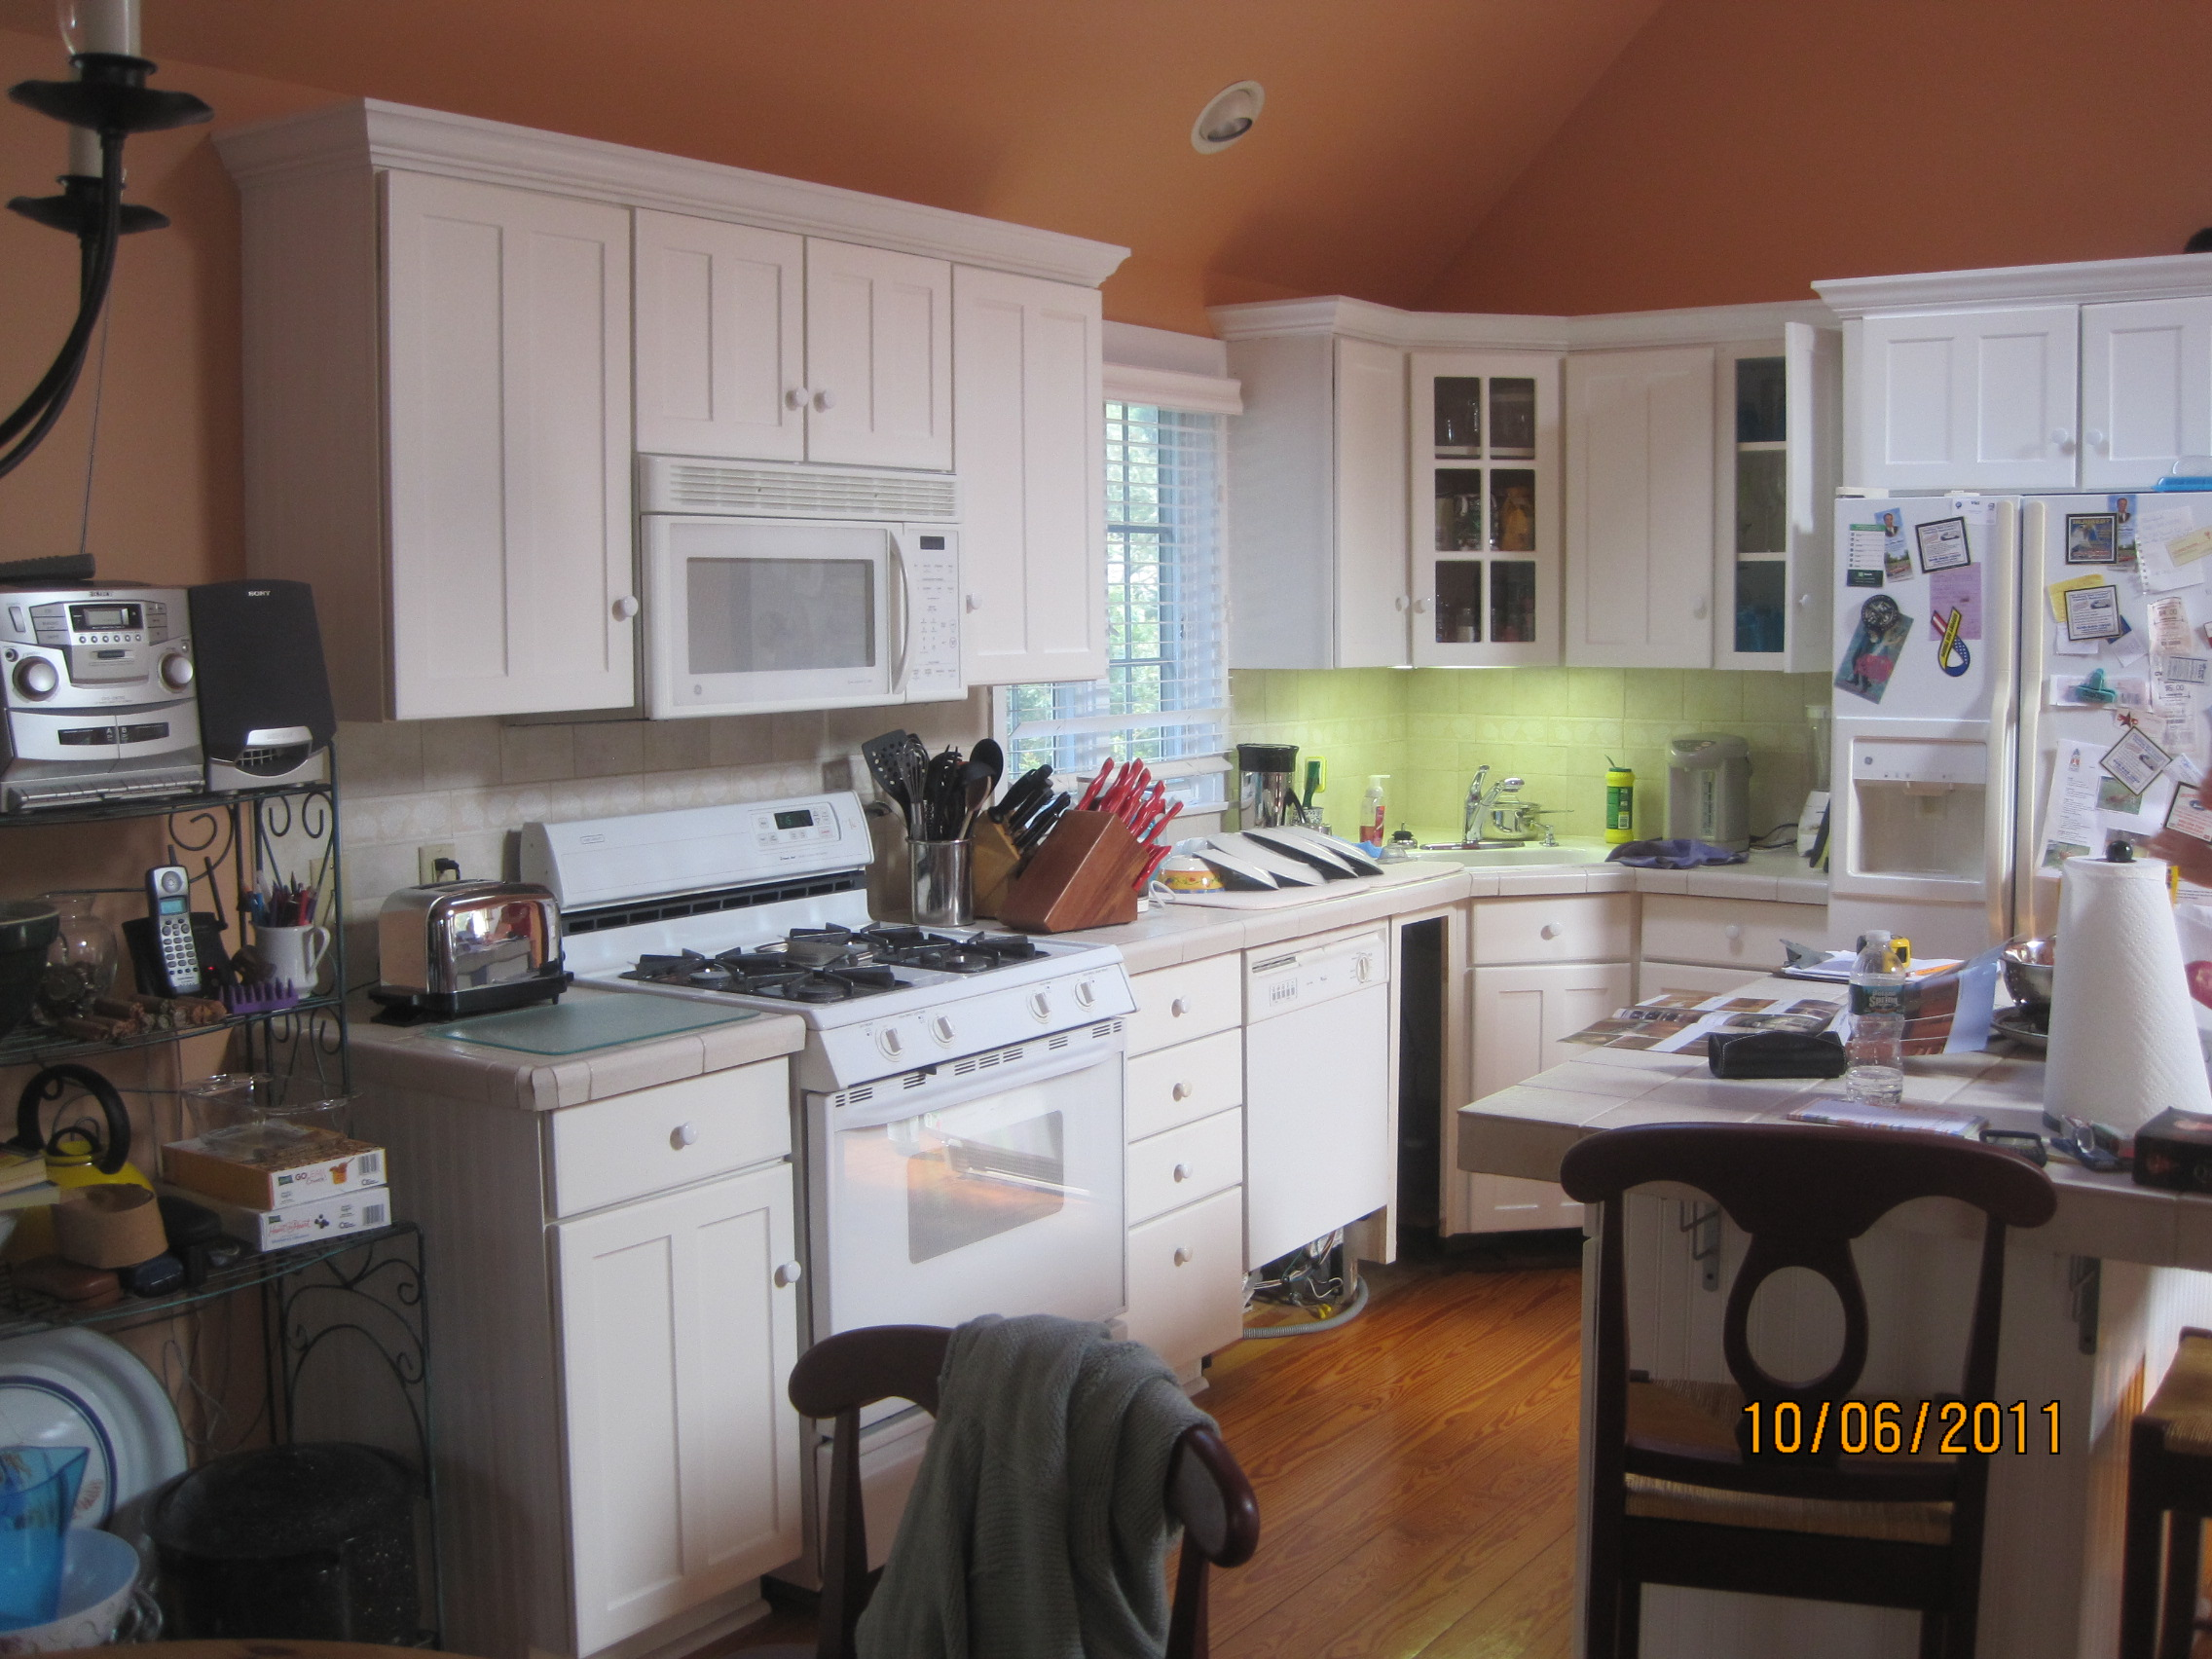 Kitchen And Bath Remodel JSI Wheaton Cabinets | Home Improvement Blog